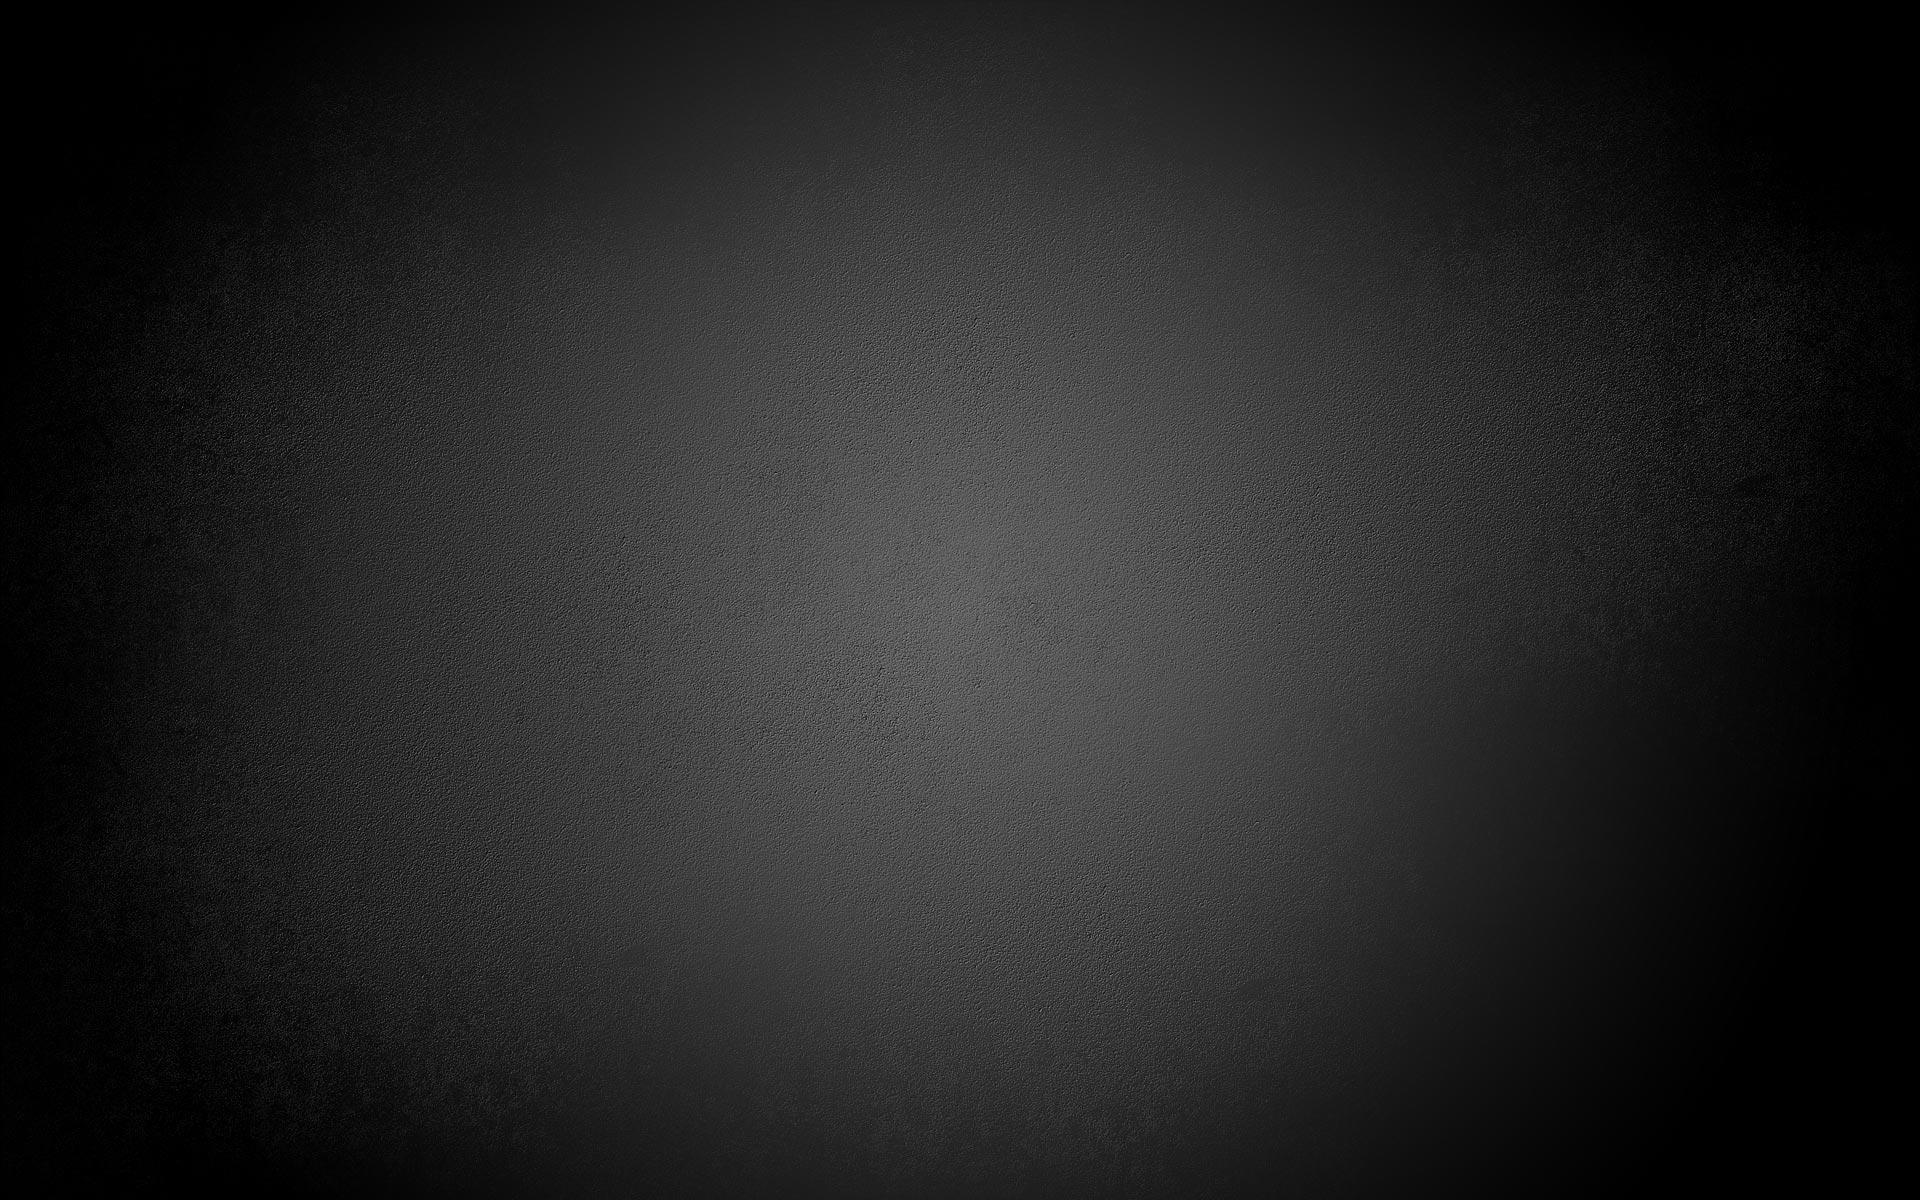 Black Abstract Backgrounds - Wallpaper Cave